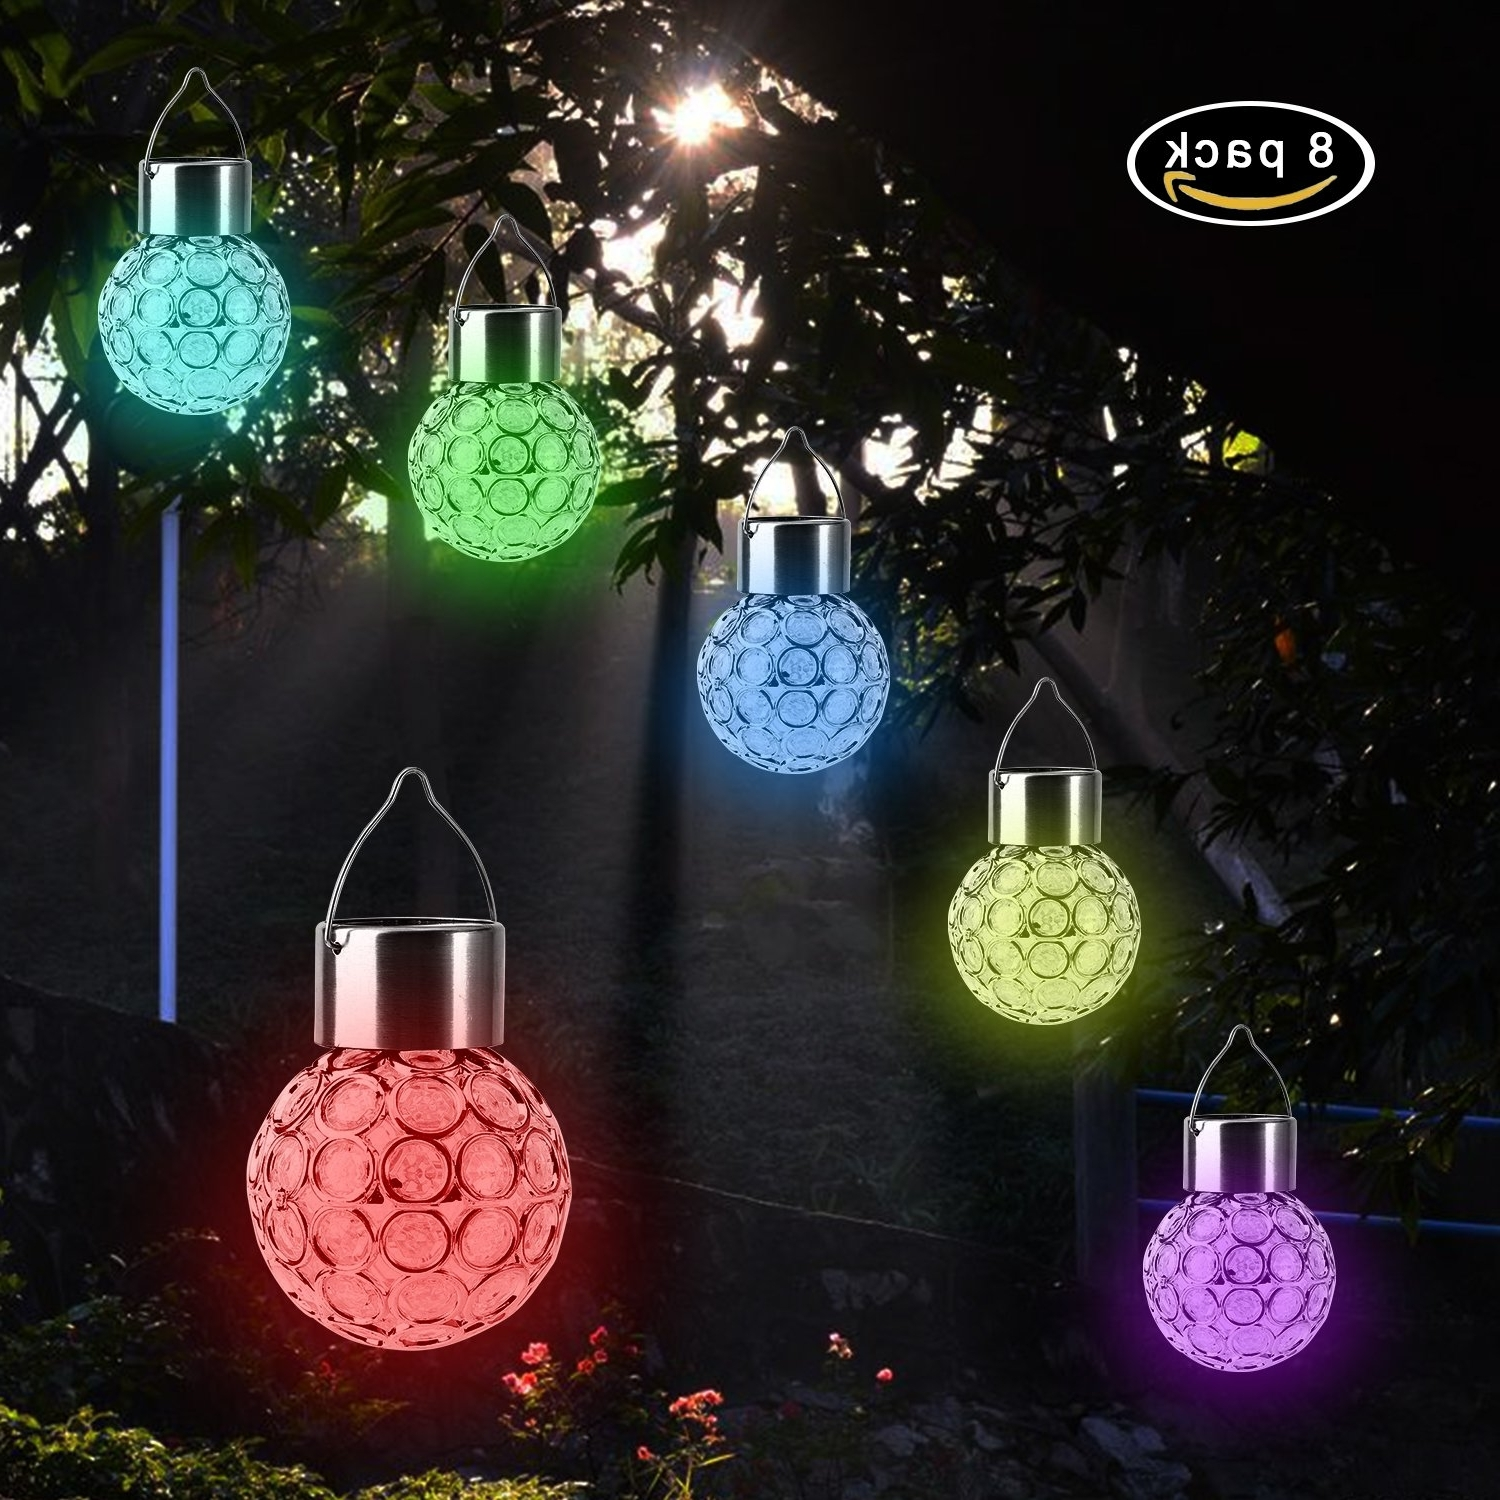 Garden Led Solar Hanging Lights Outdoor (8 Pack), Outdoor Hanging Within Most Recent Outdoor Hanging Nylon Lanterns (Gallery 20 of 20)